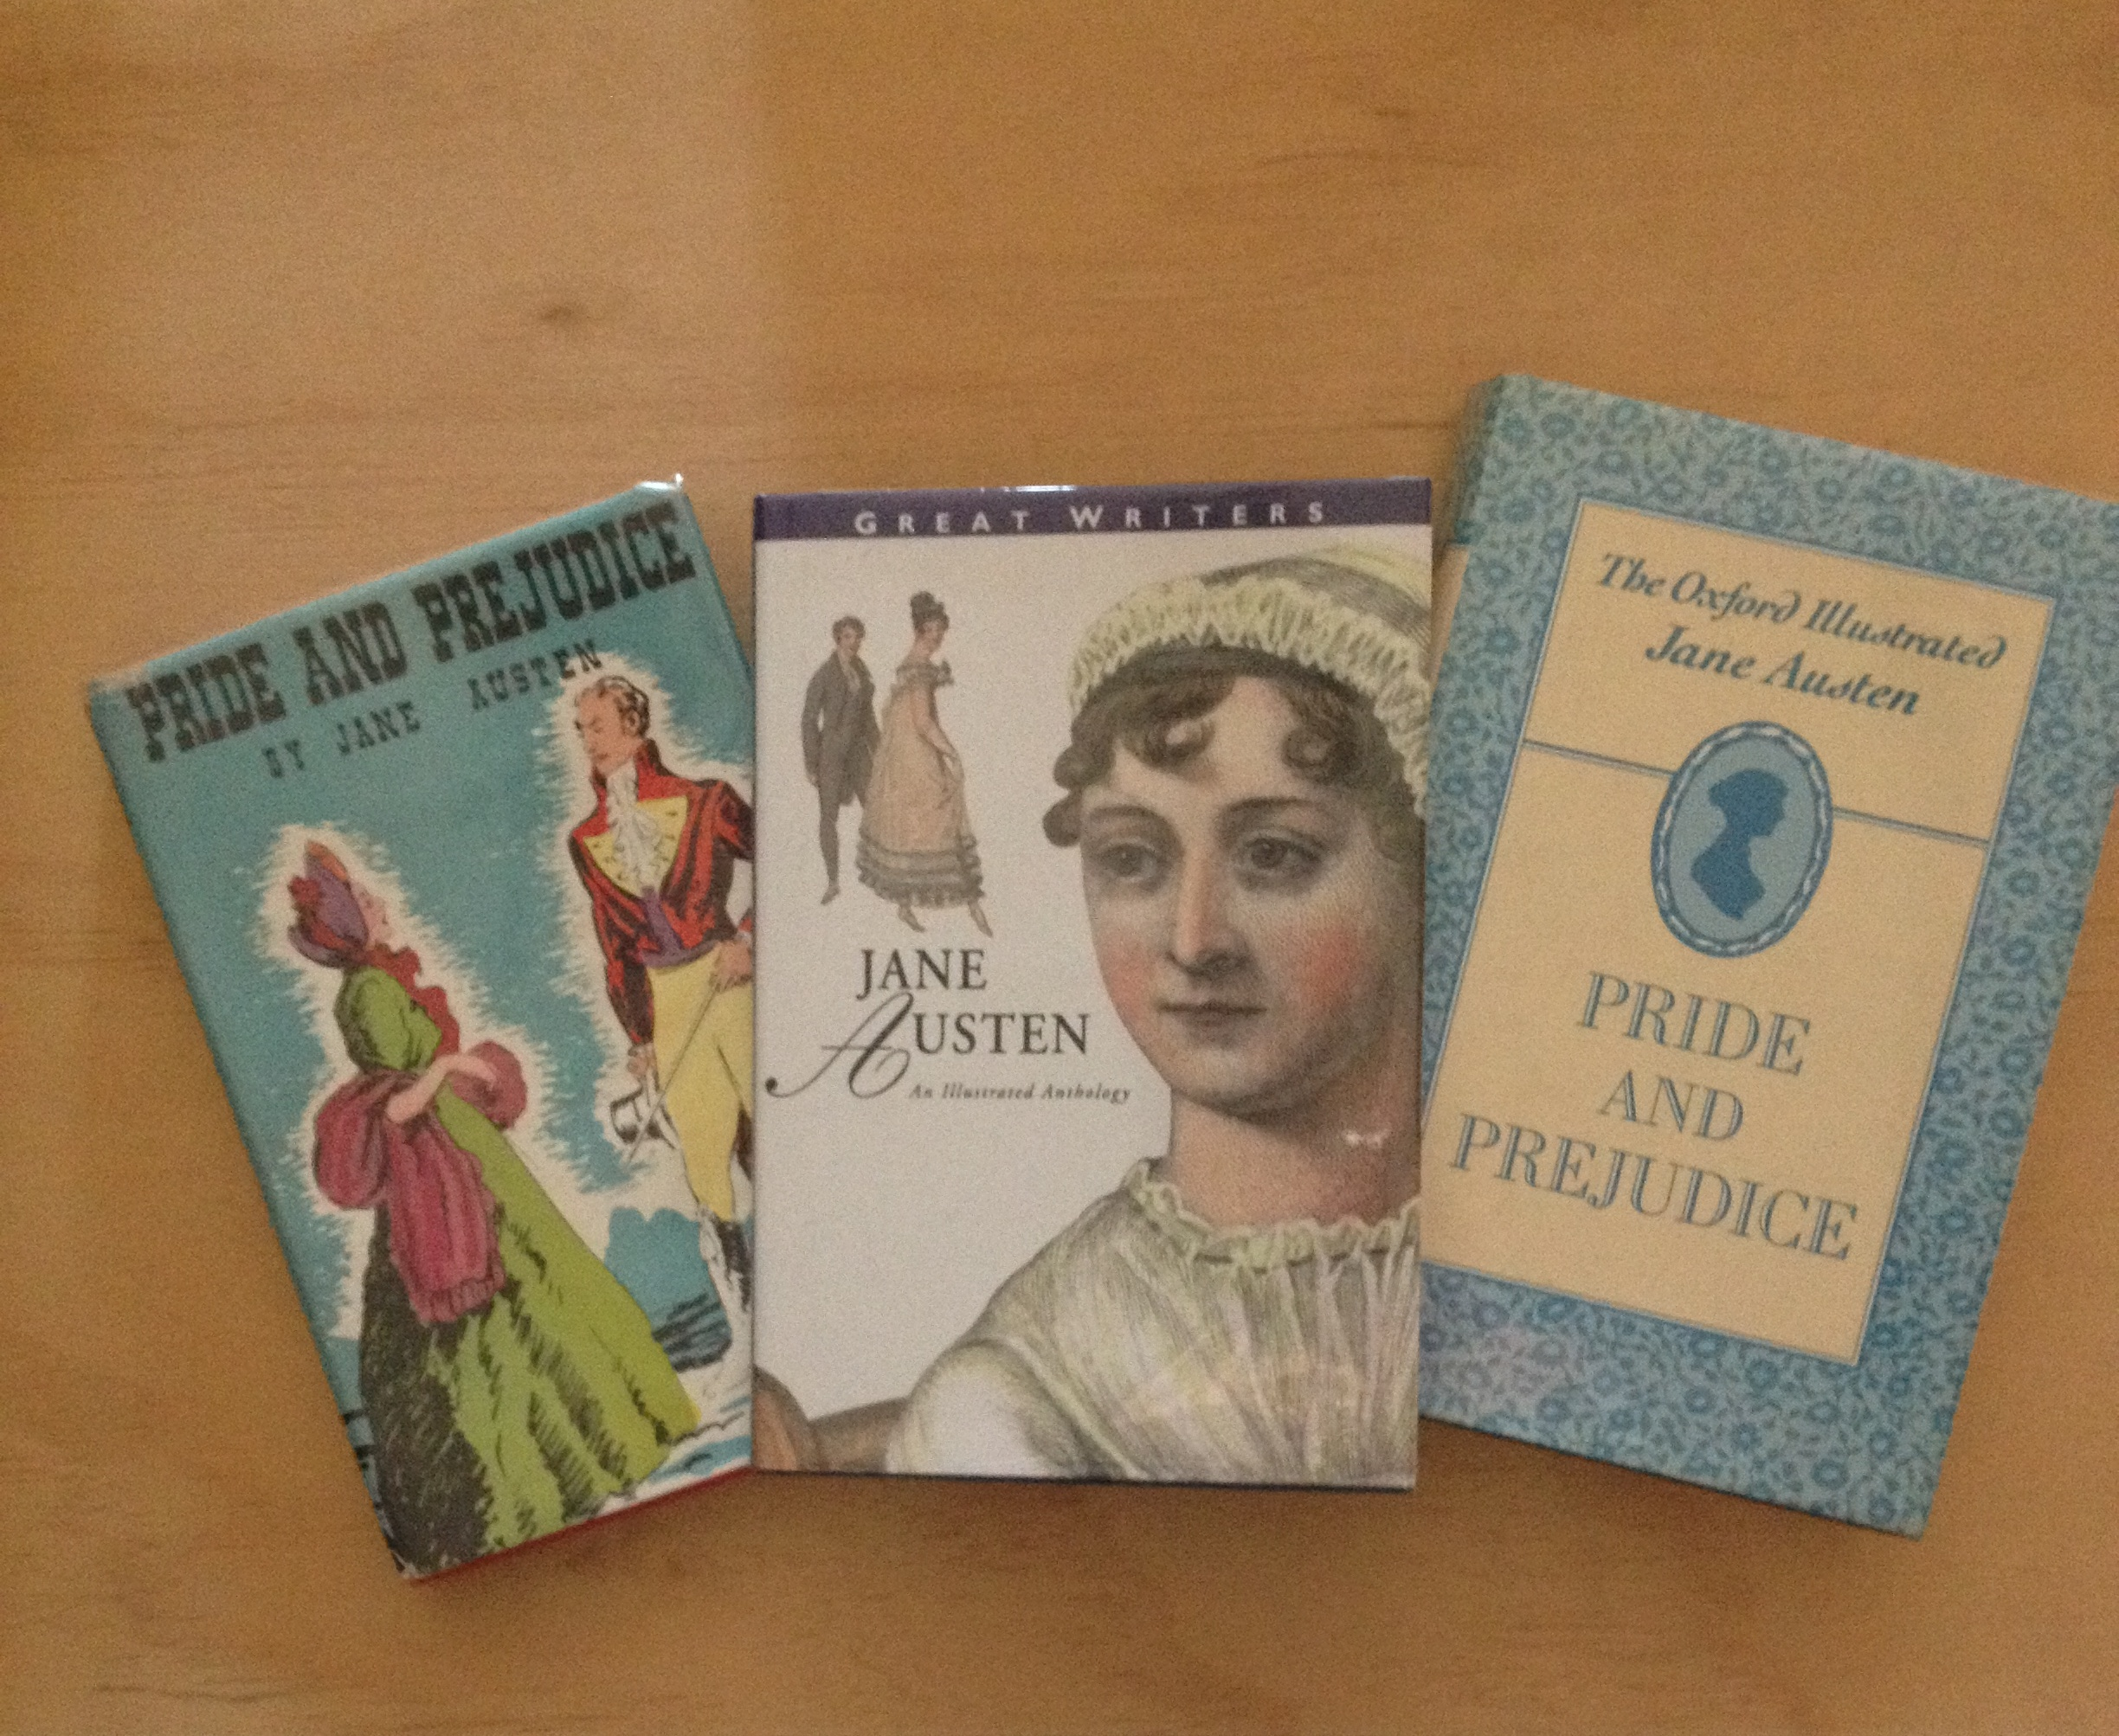 Jane Austen and Pride and Prejudice is a favourite title for book collectors.